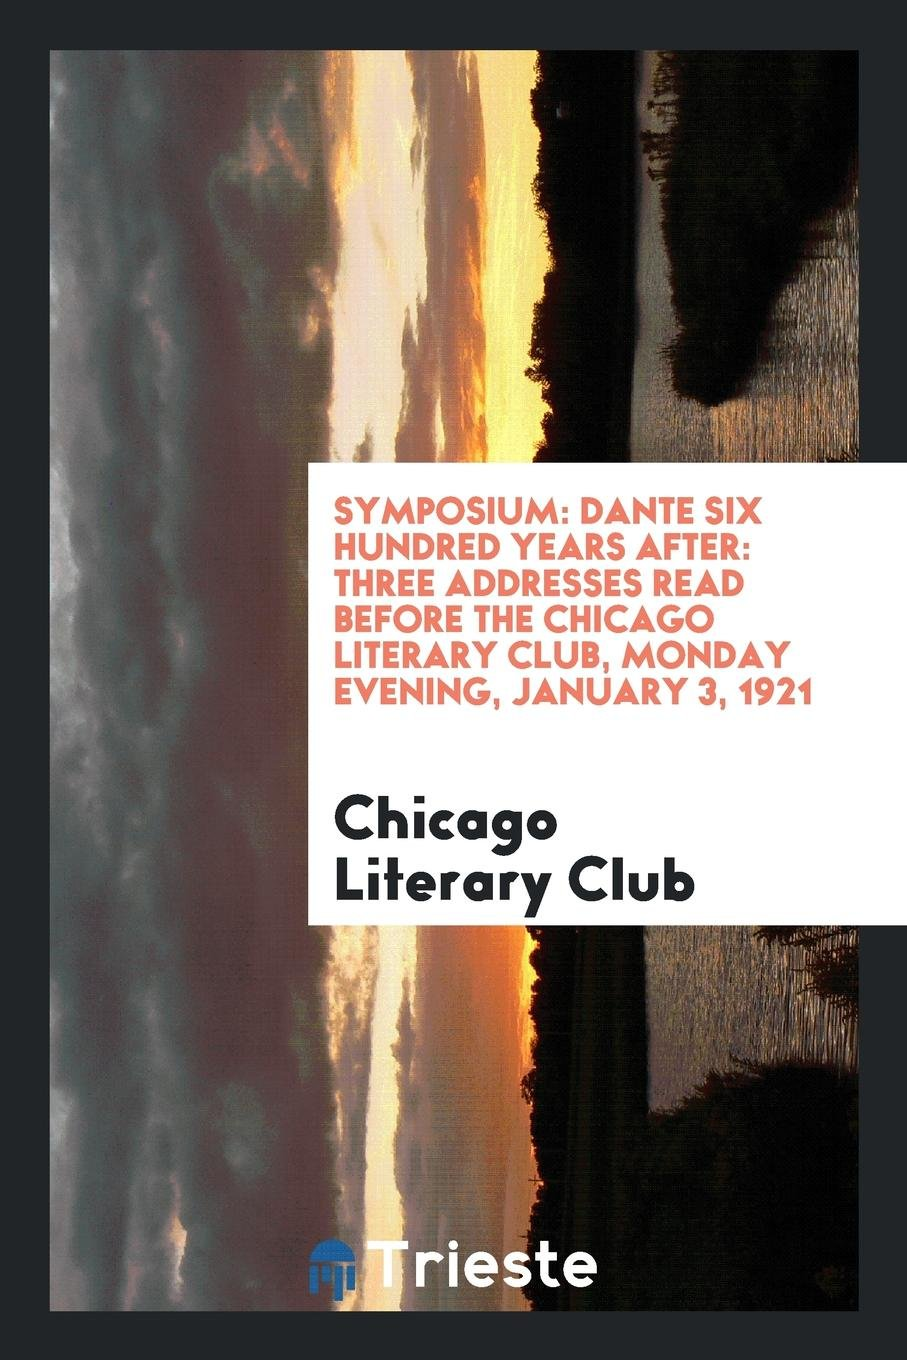 Symposium: Dante Six Hundred Years After: Three Addresses Read Before the Chicago Literary Club, Monday Evening, January 3, 1921 pdf